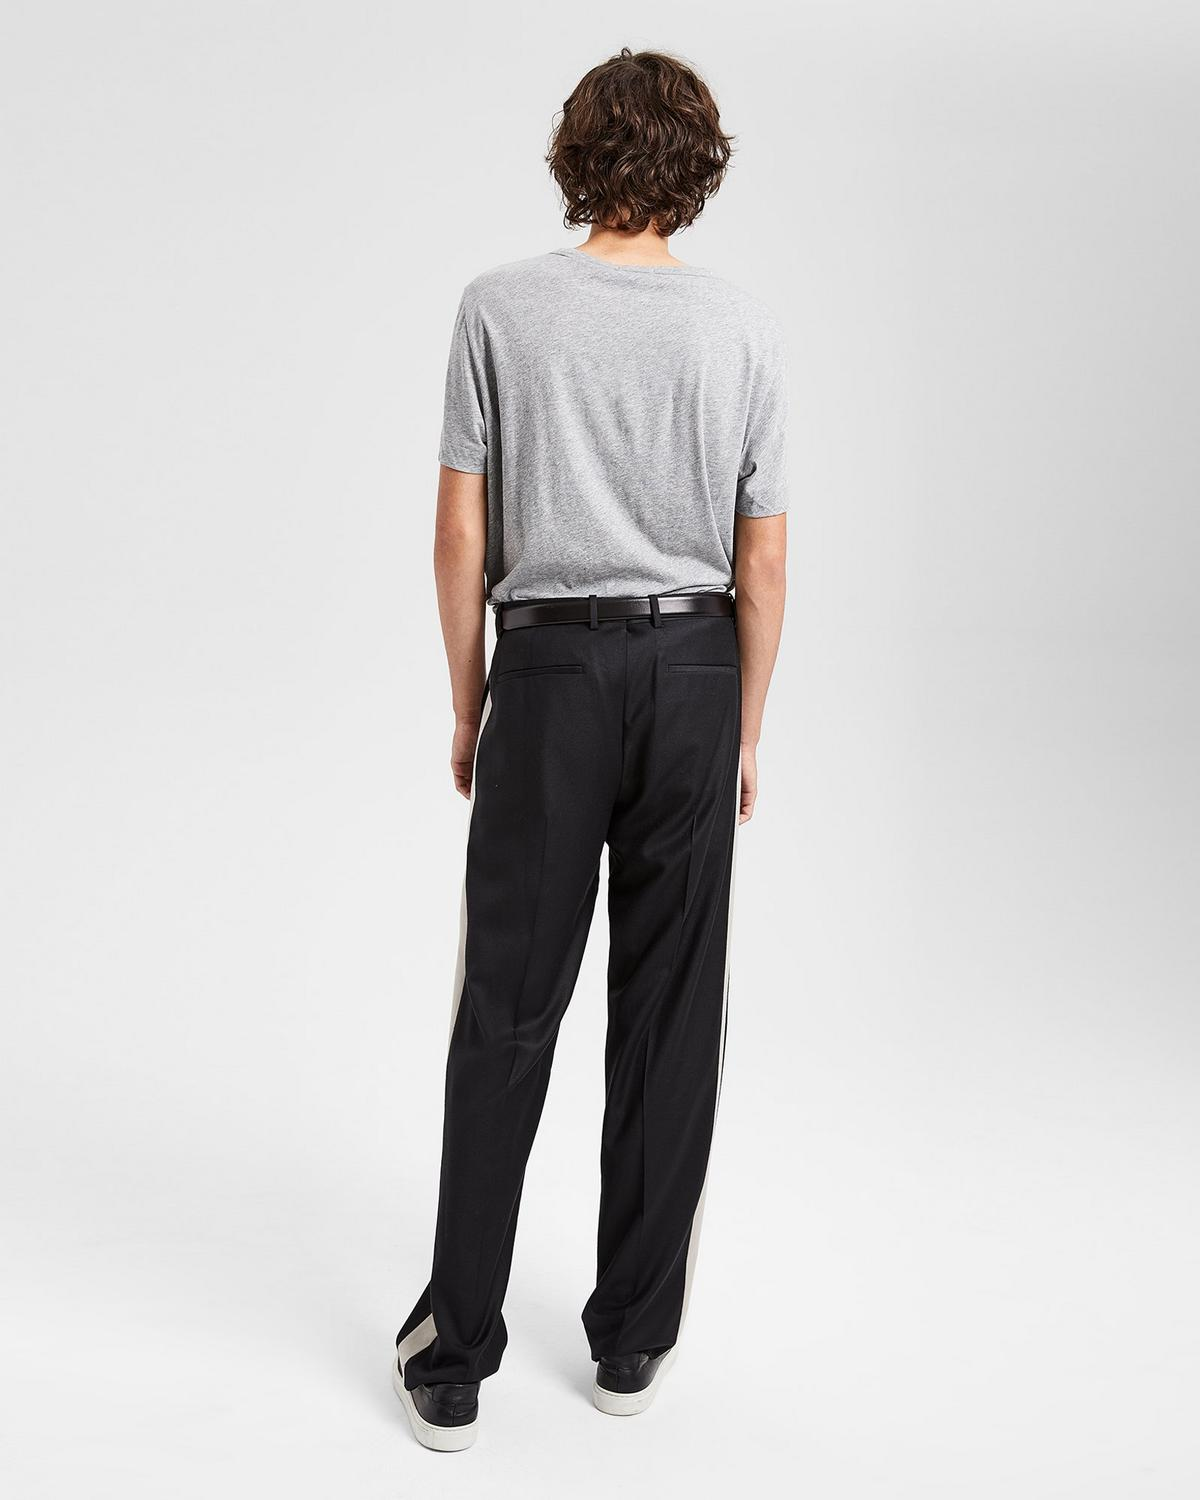 Tailored Flannel Relaxed Striped Pant